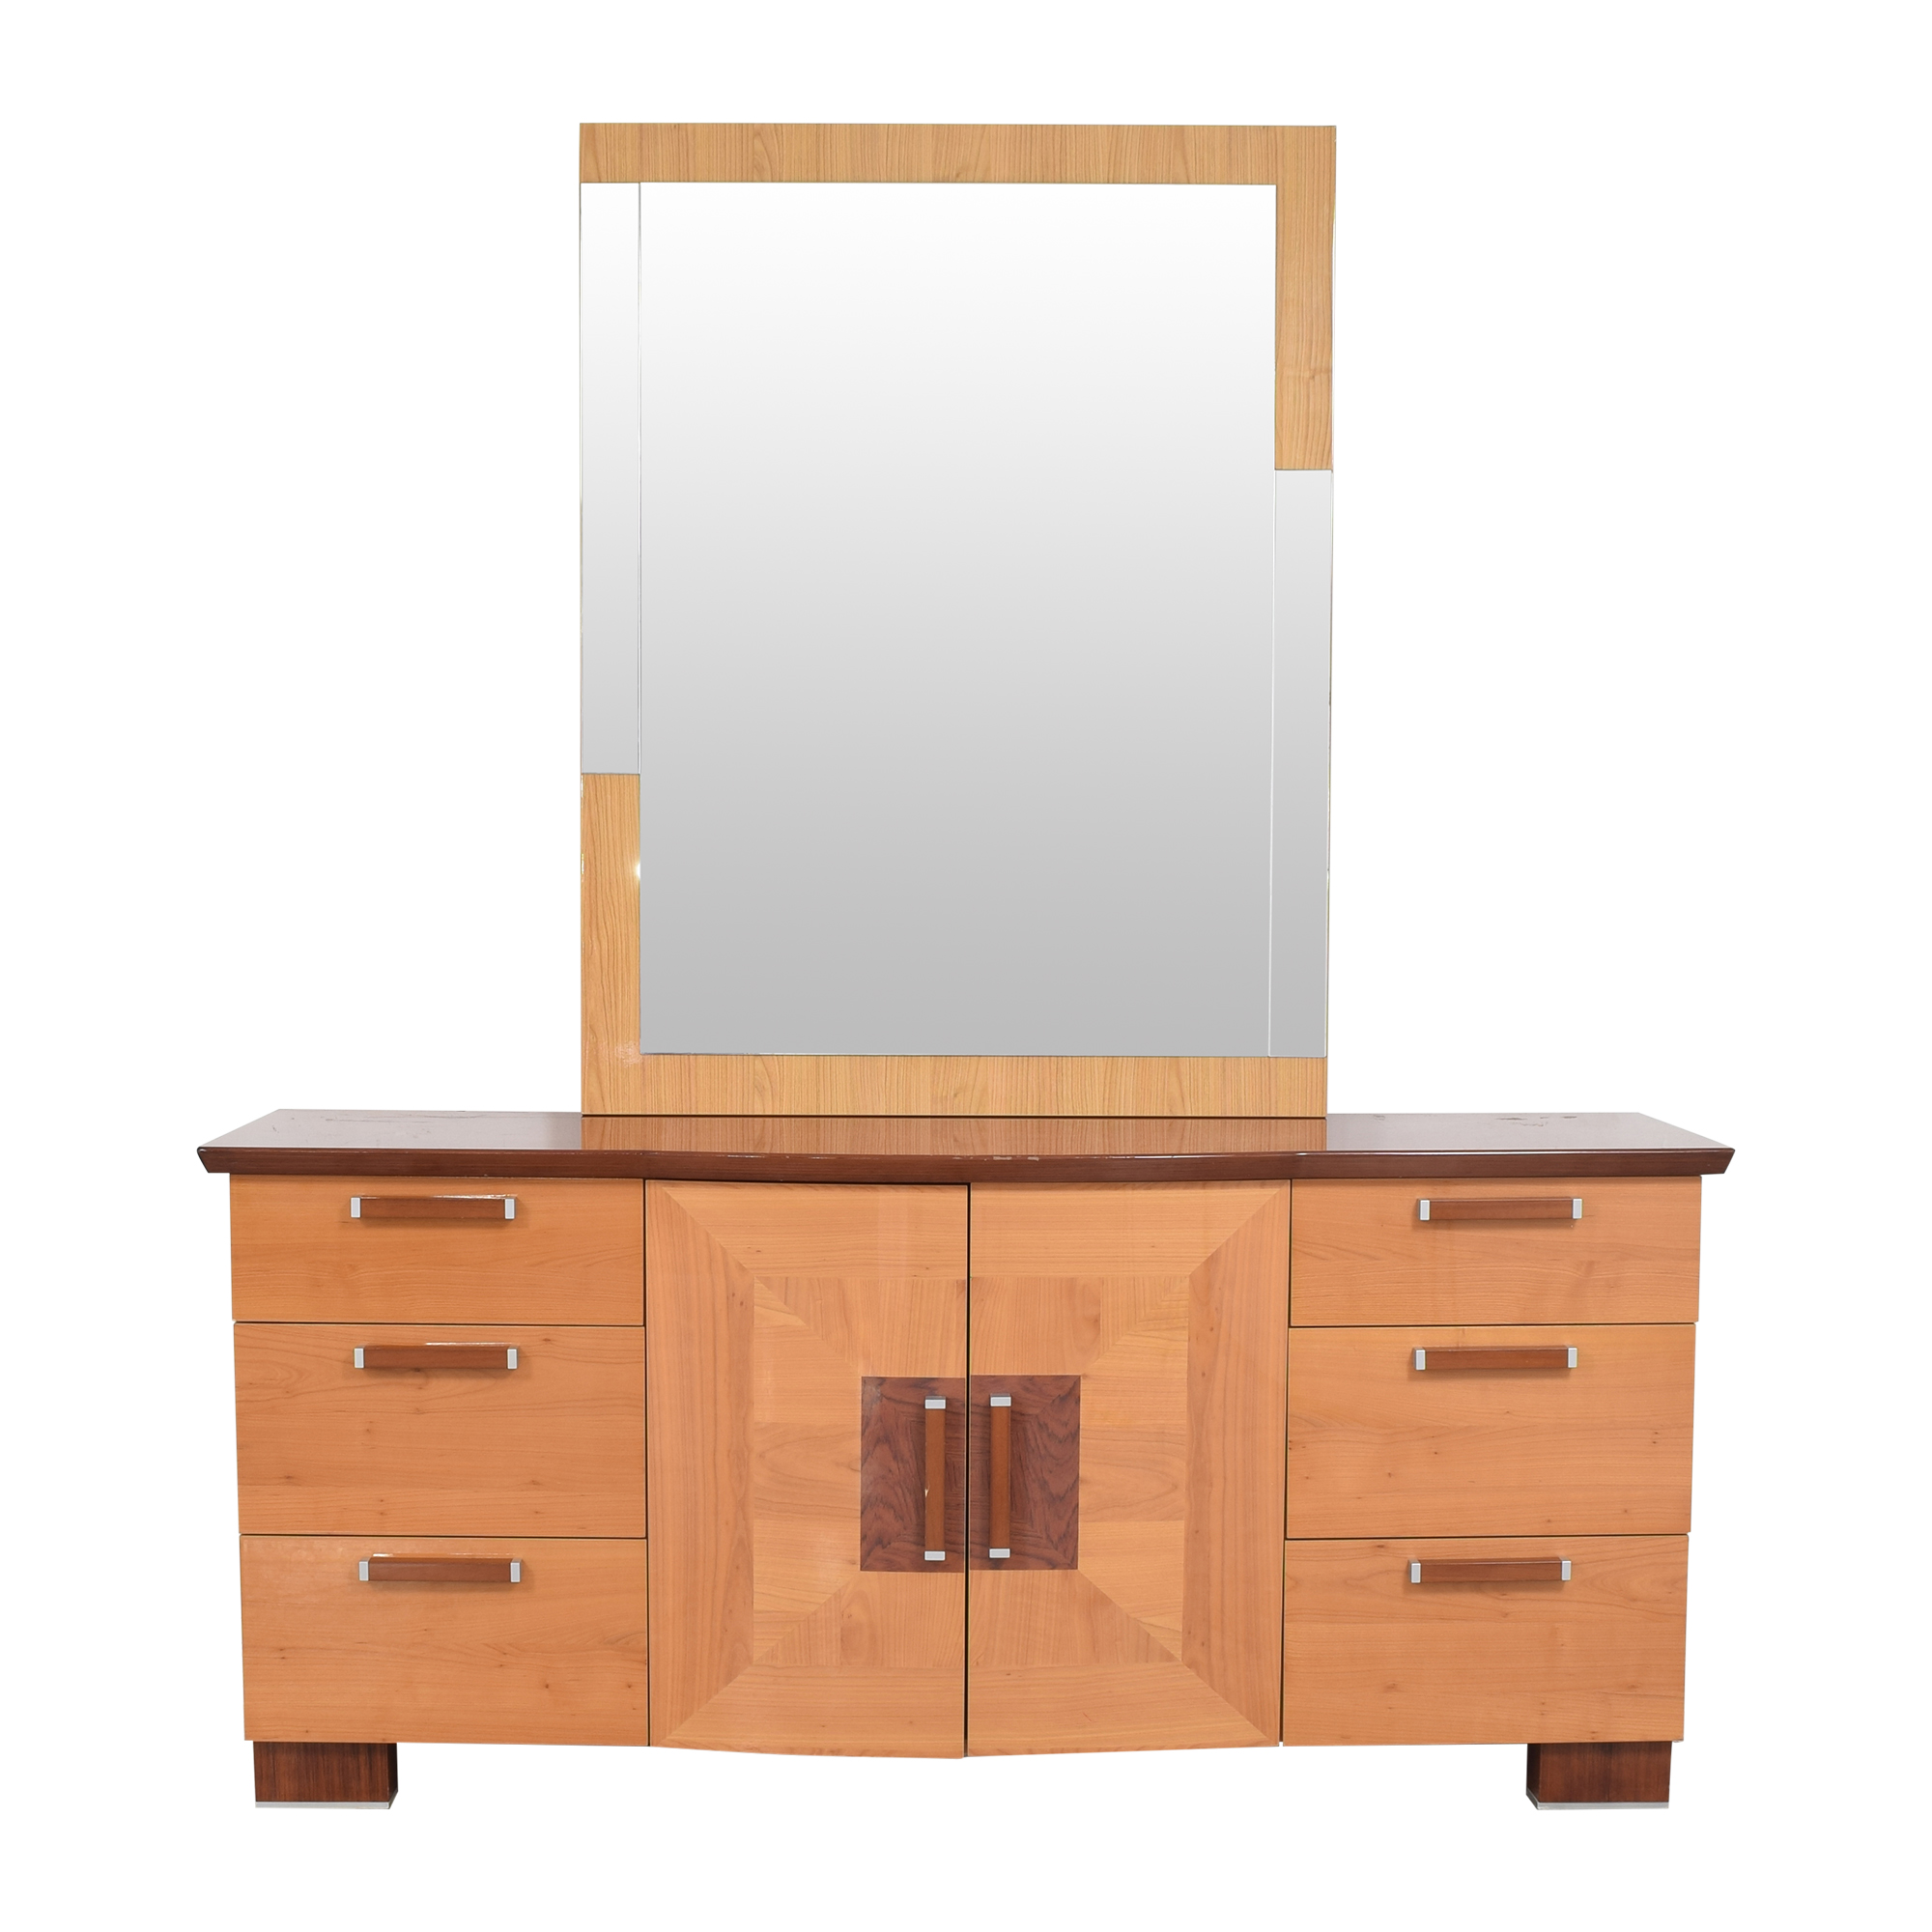 Alf Italia Alf Italia Door Dresser with Mirror coupon